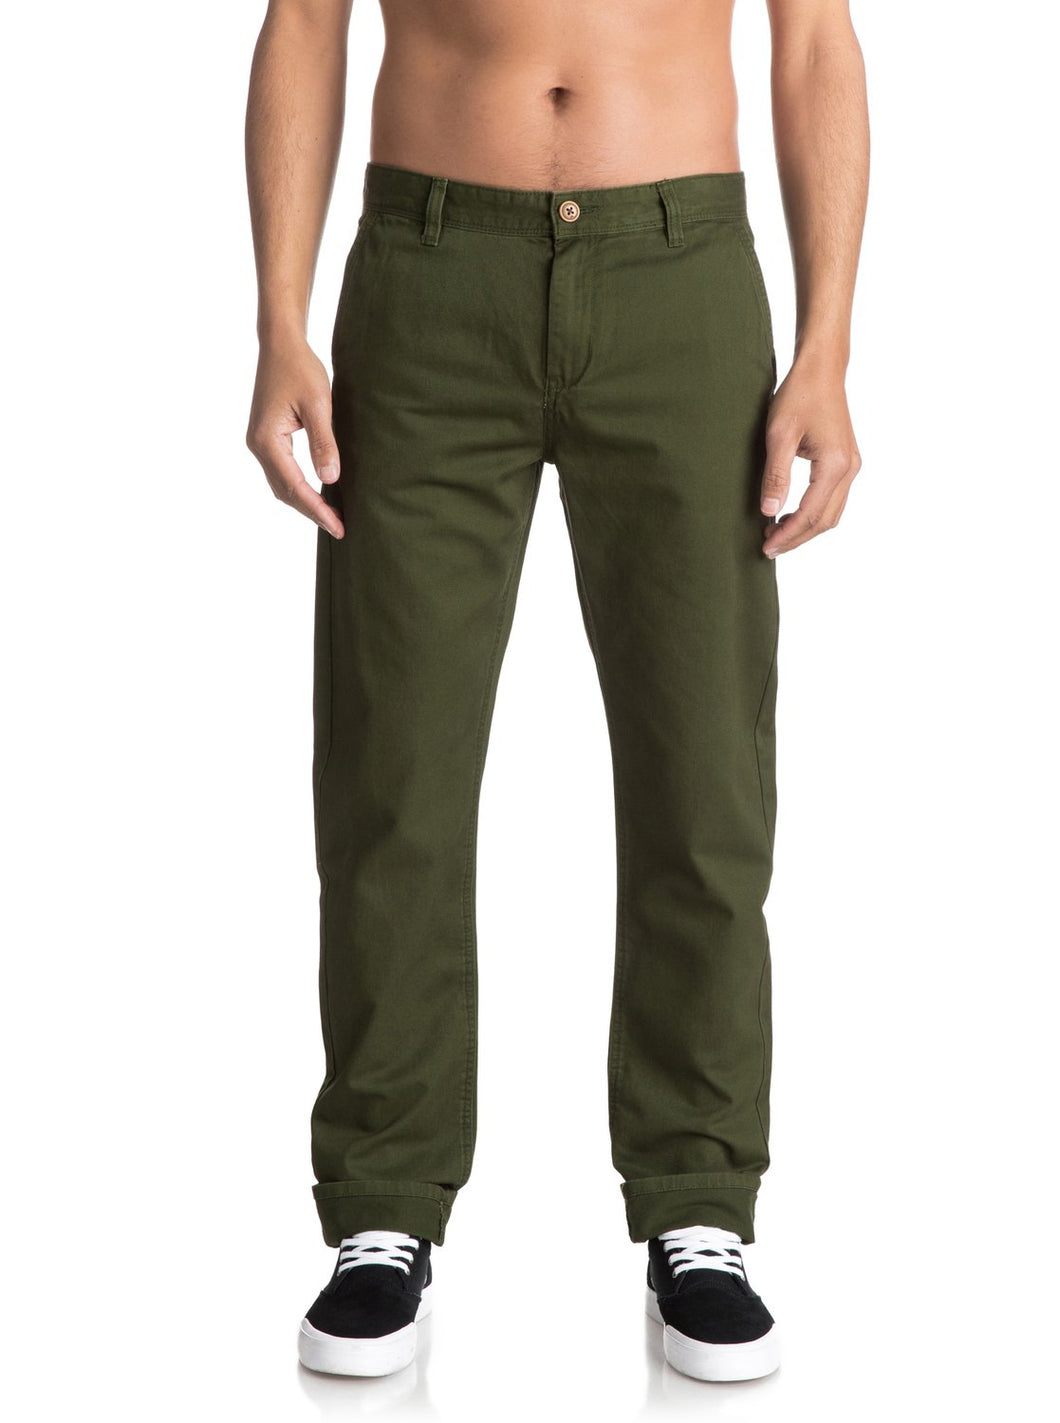 Quiksilver Everyday Chino Pants